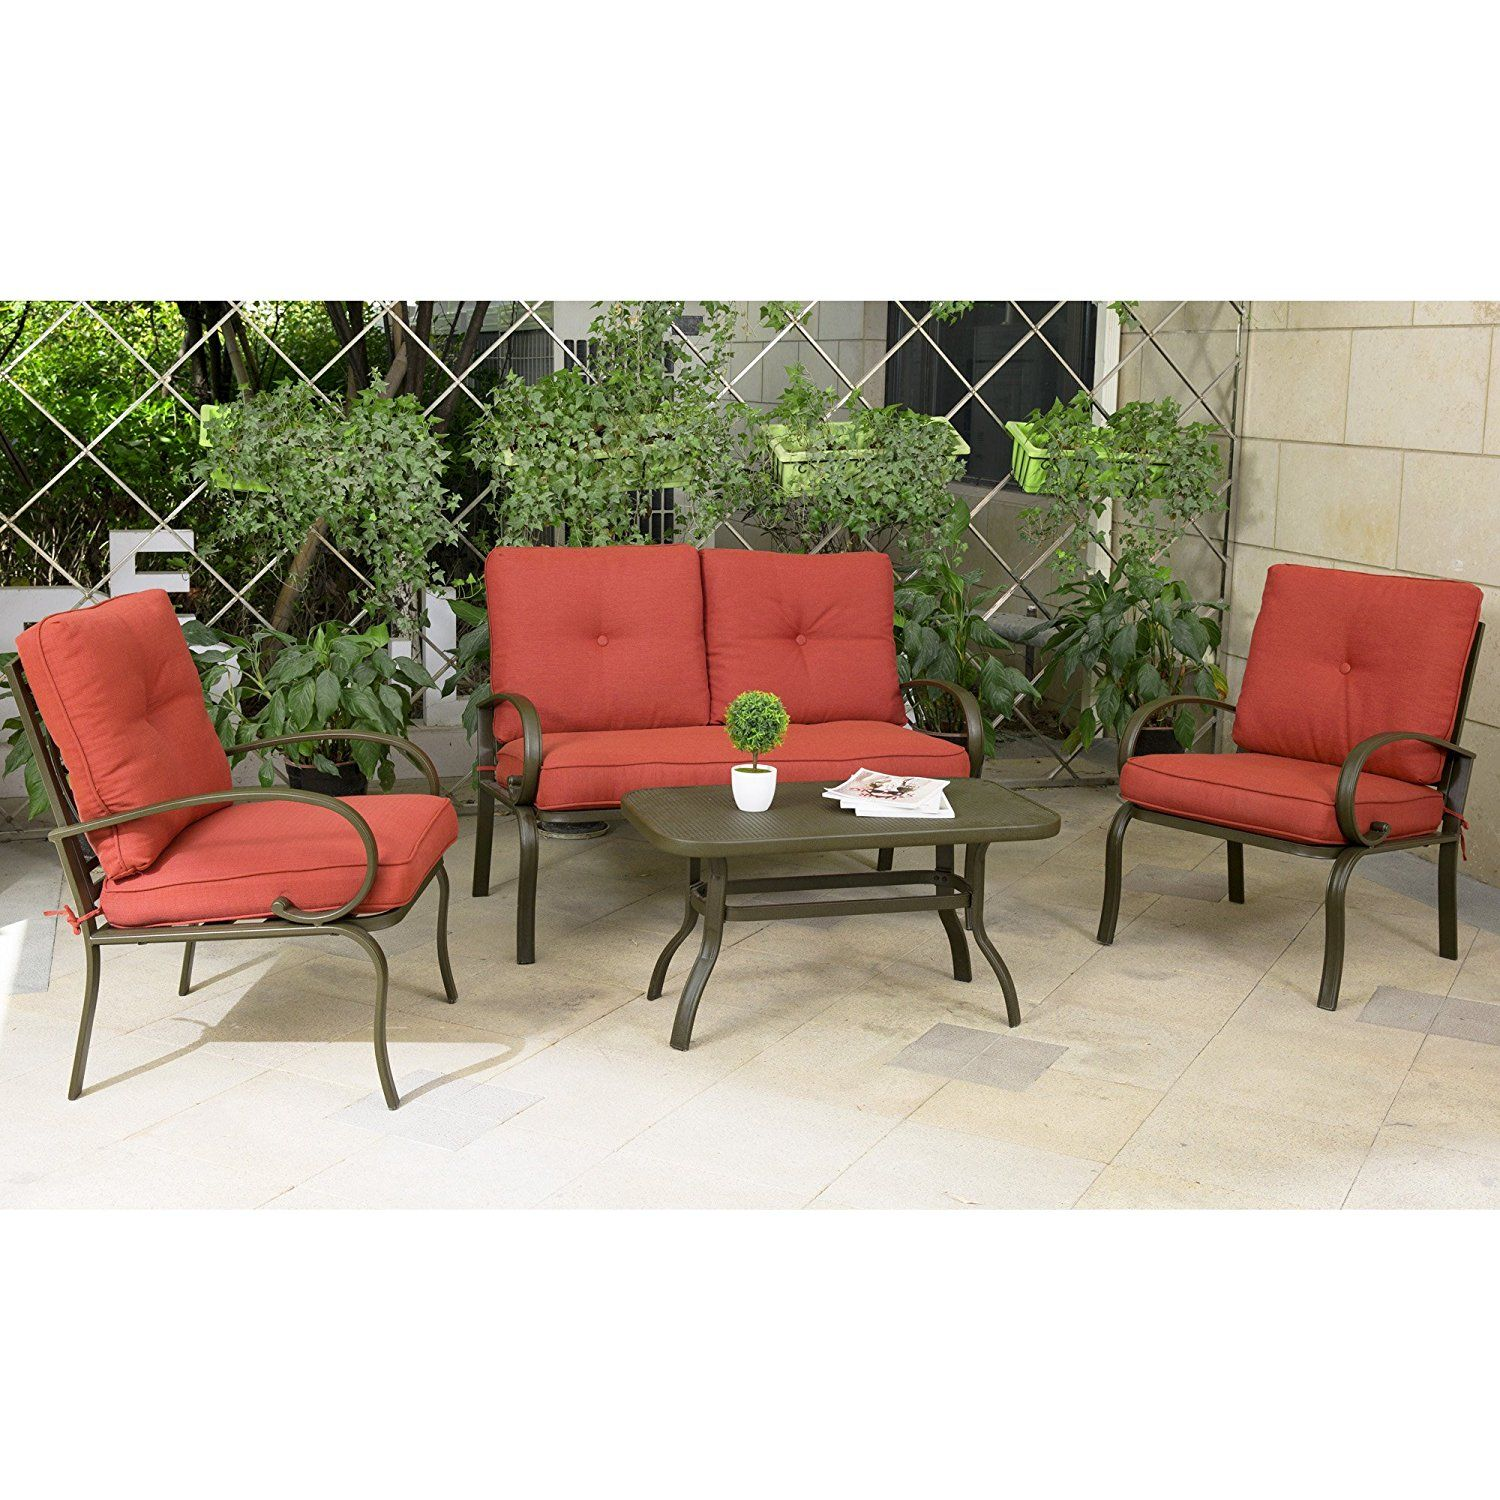 Amazon Cloud Mountain 4 Piece Patio Furniture Set Outdoor